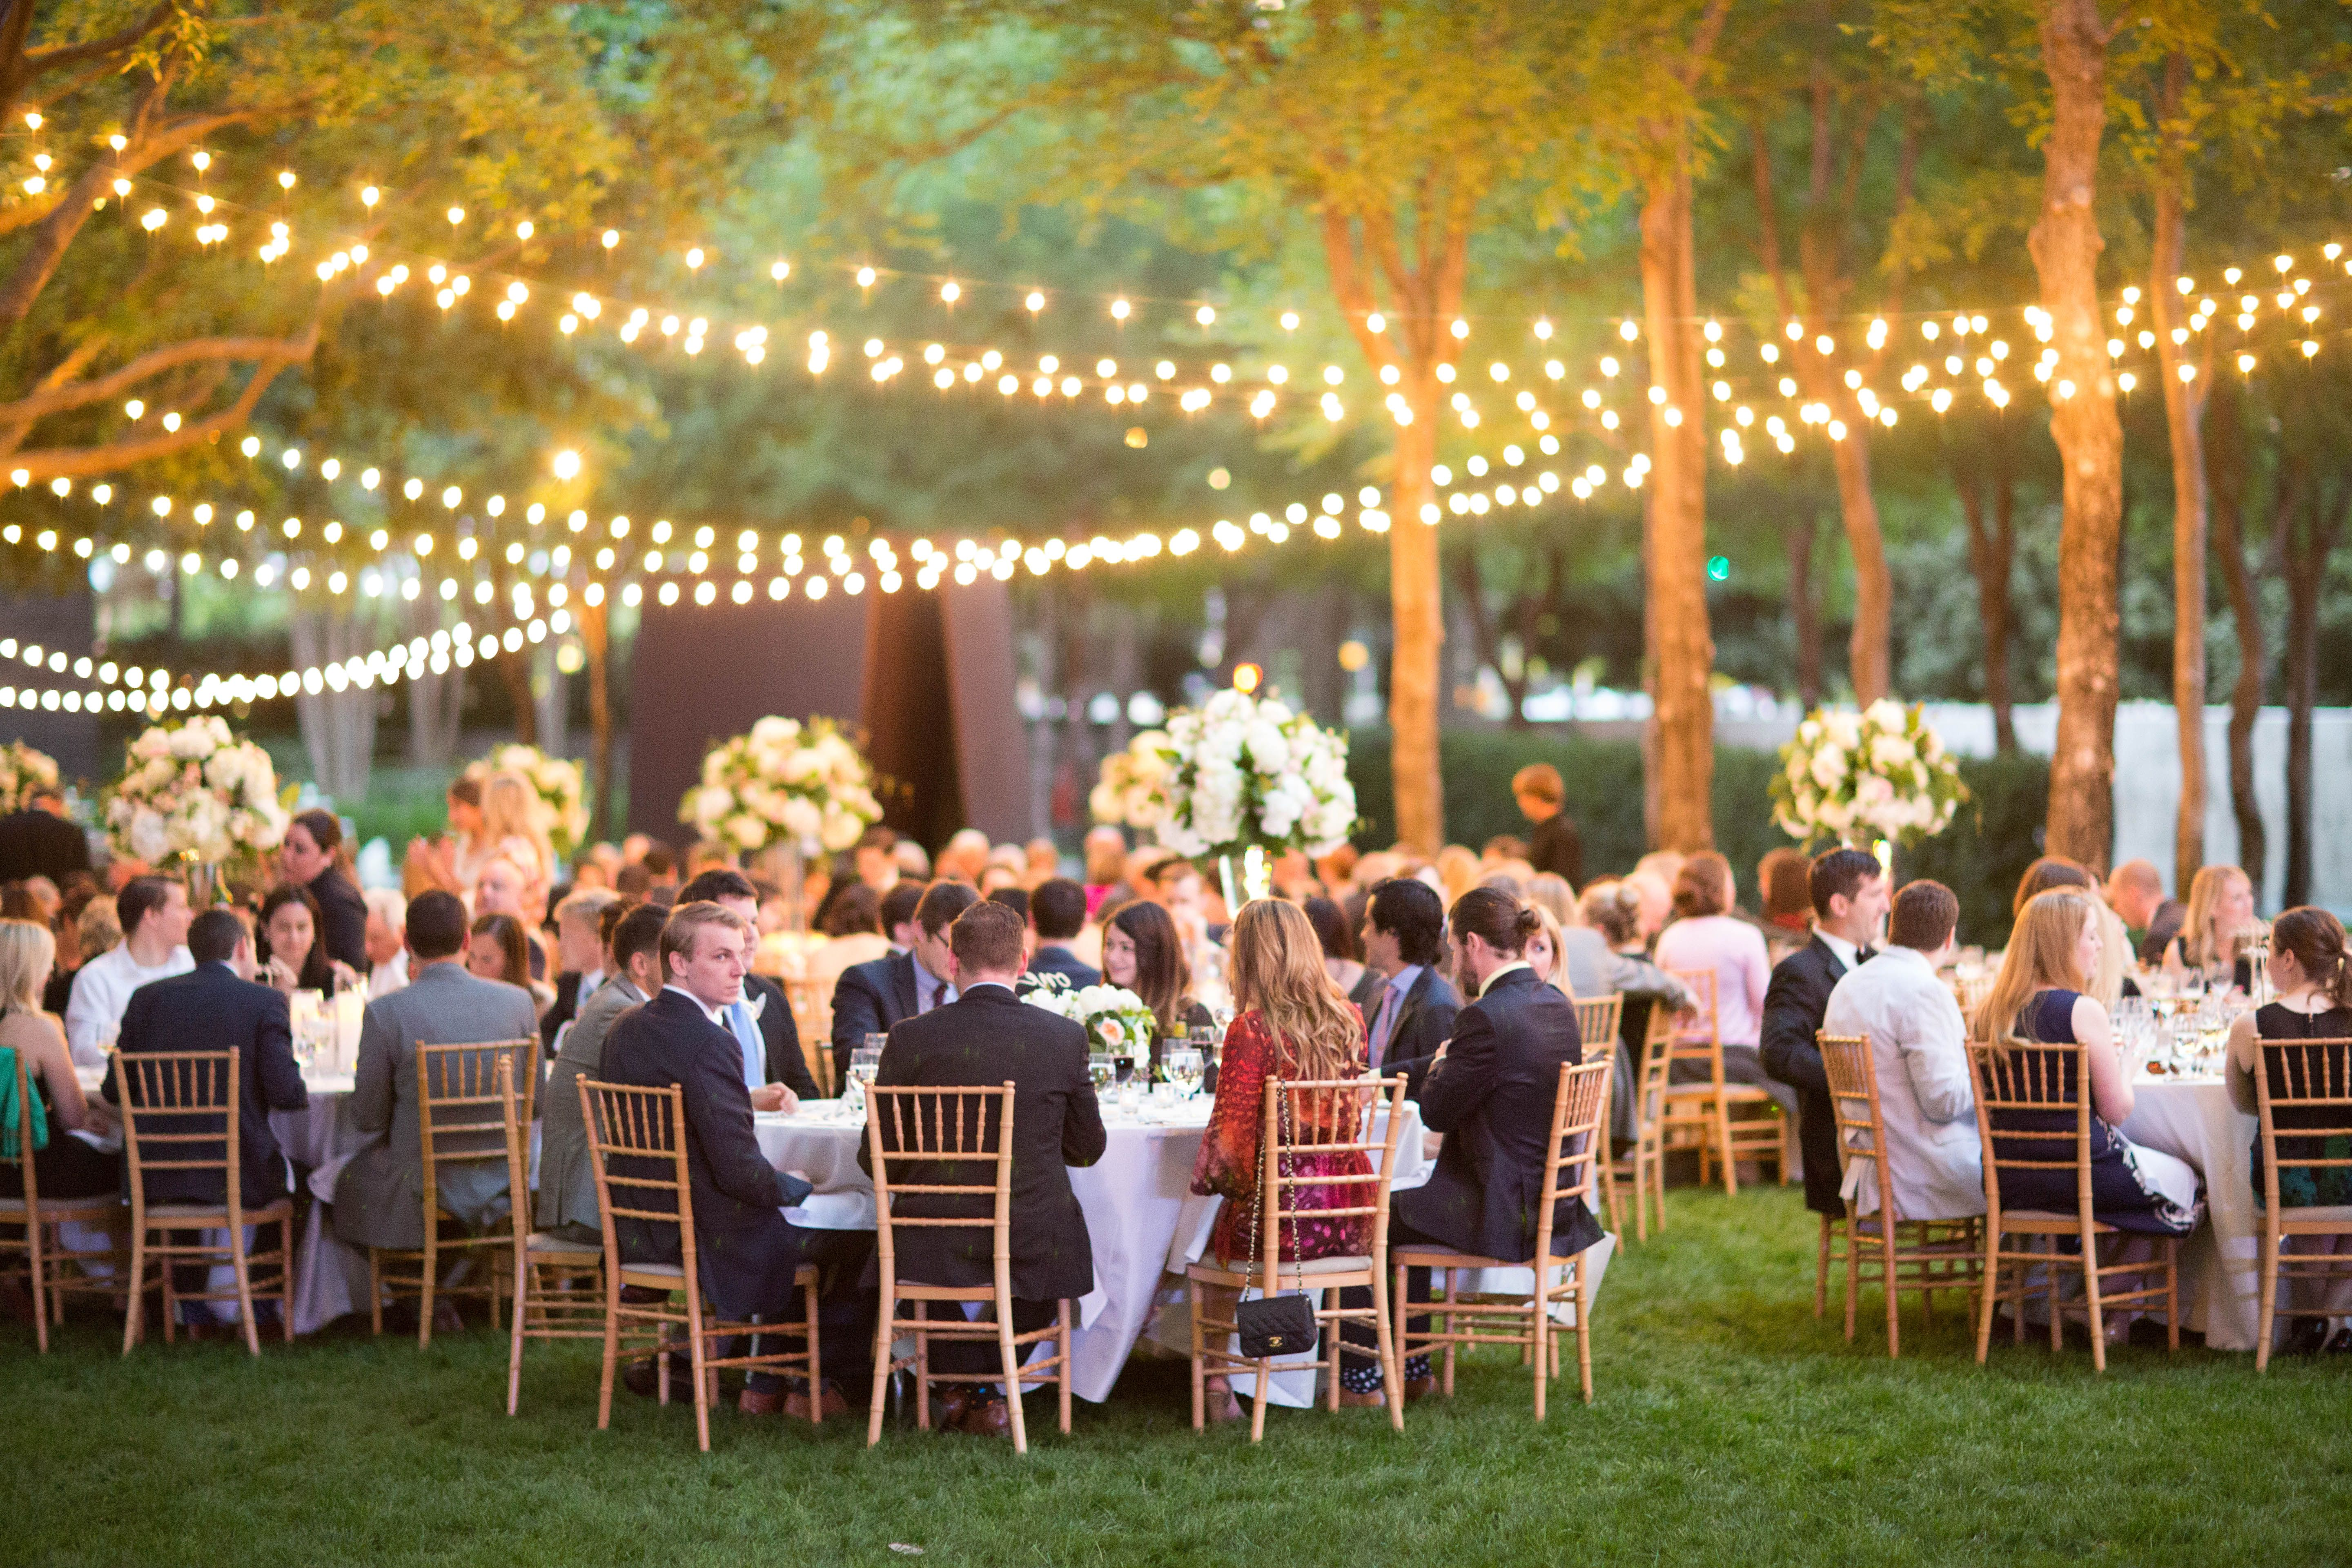 outdoor wedding venues in fort worth tx%0A Intimate and romantic setting for an outdoor wedding at the Nasher  Sculpture Center in Dallas